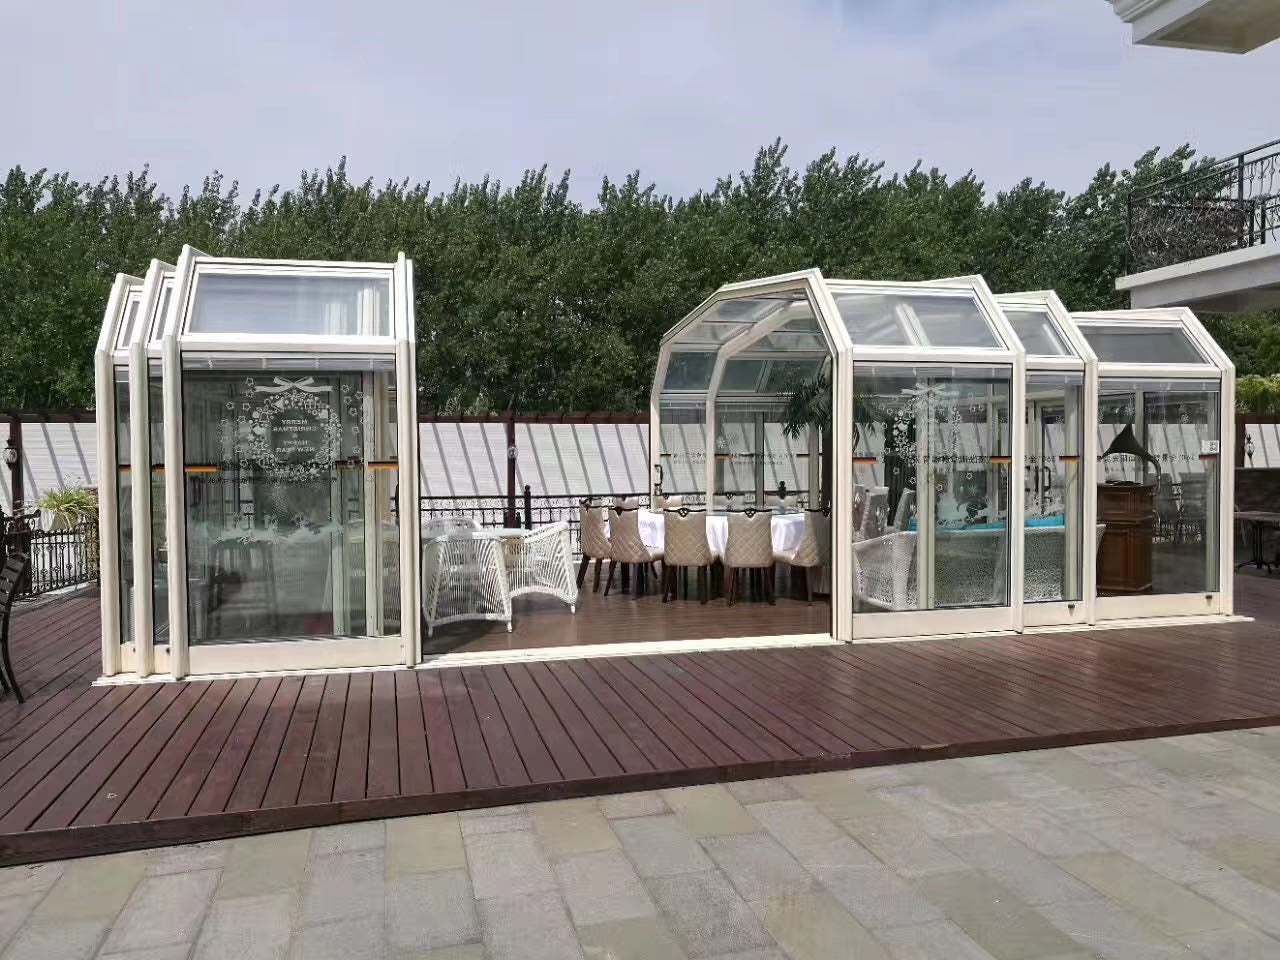 Superwu 2021Shade House Transparent Aluminum Alloy Toughened Glass Room Terrace European Automatic Sun Room